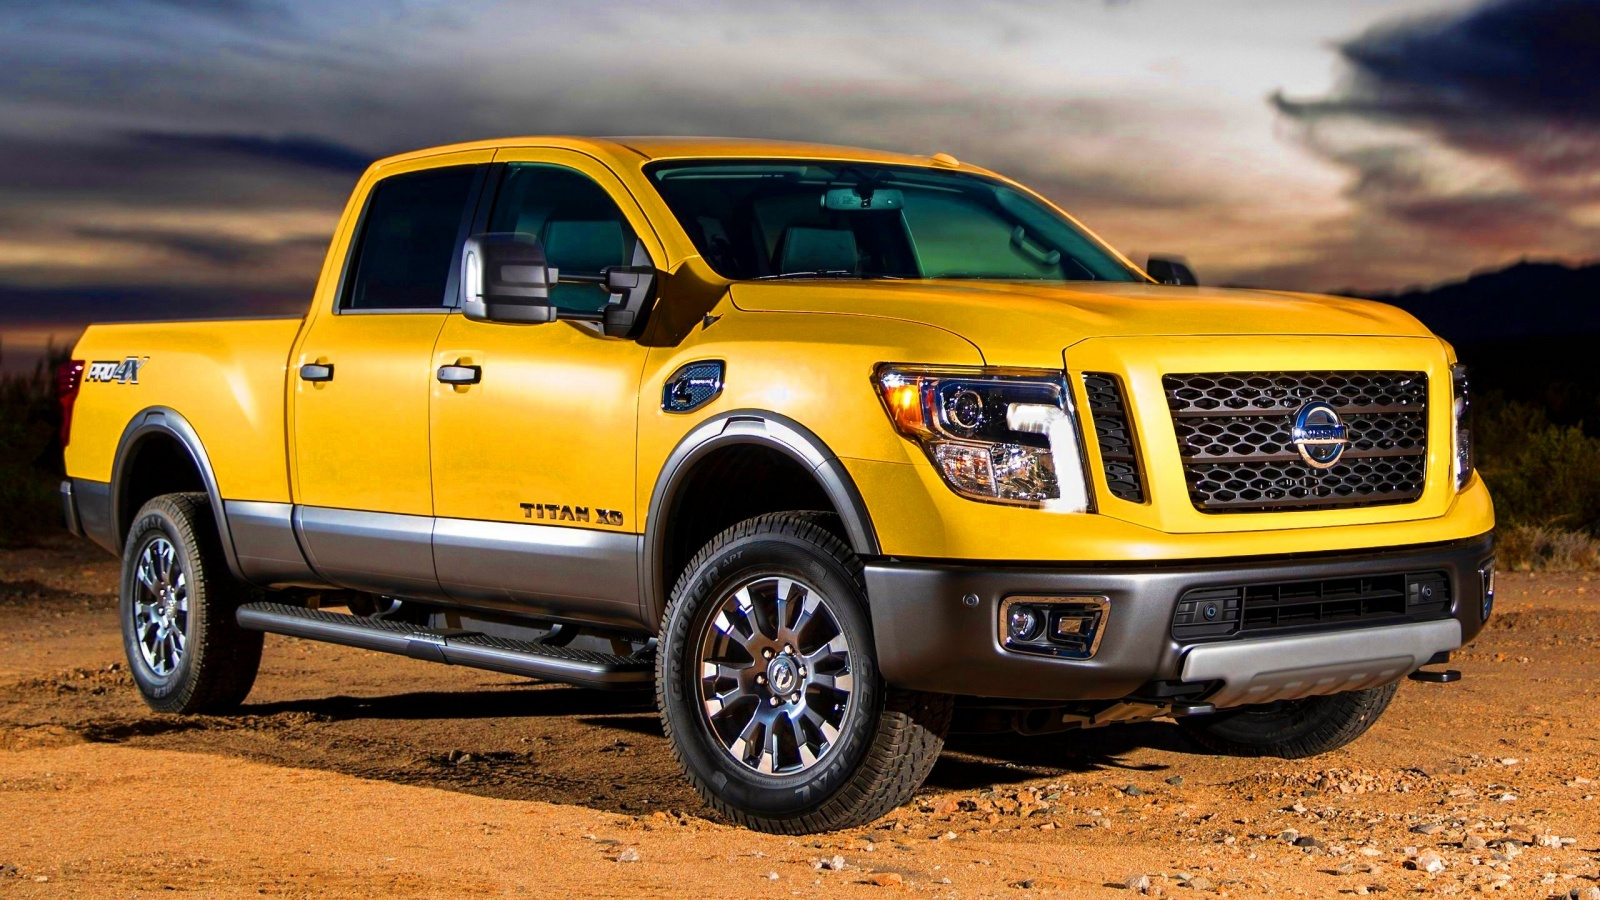 nissan titan xd 2016 wallpapers 1600x900 571271 exterior fuse box for 2006 f 150 external fuse box for 1970 chevelle